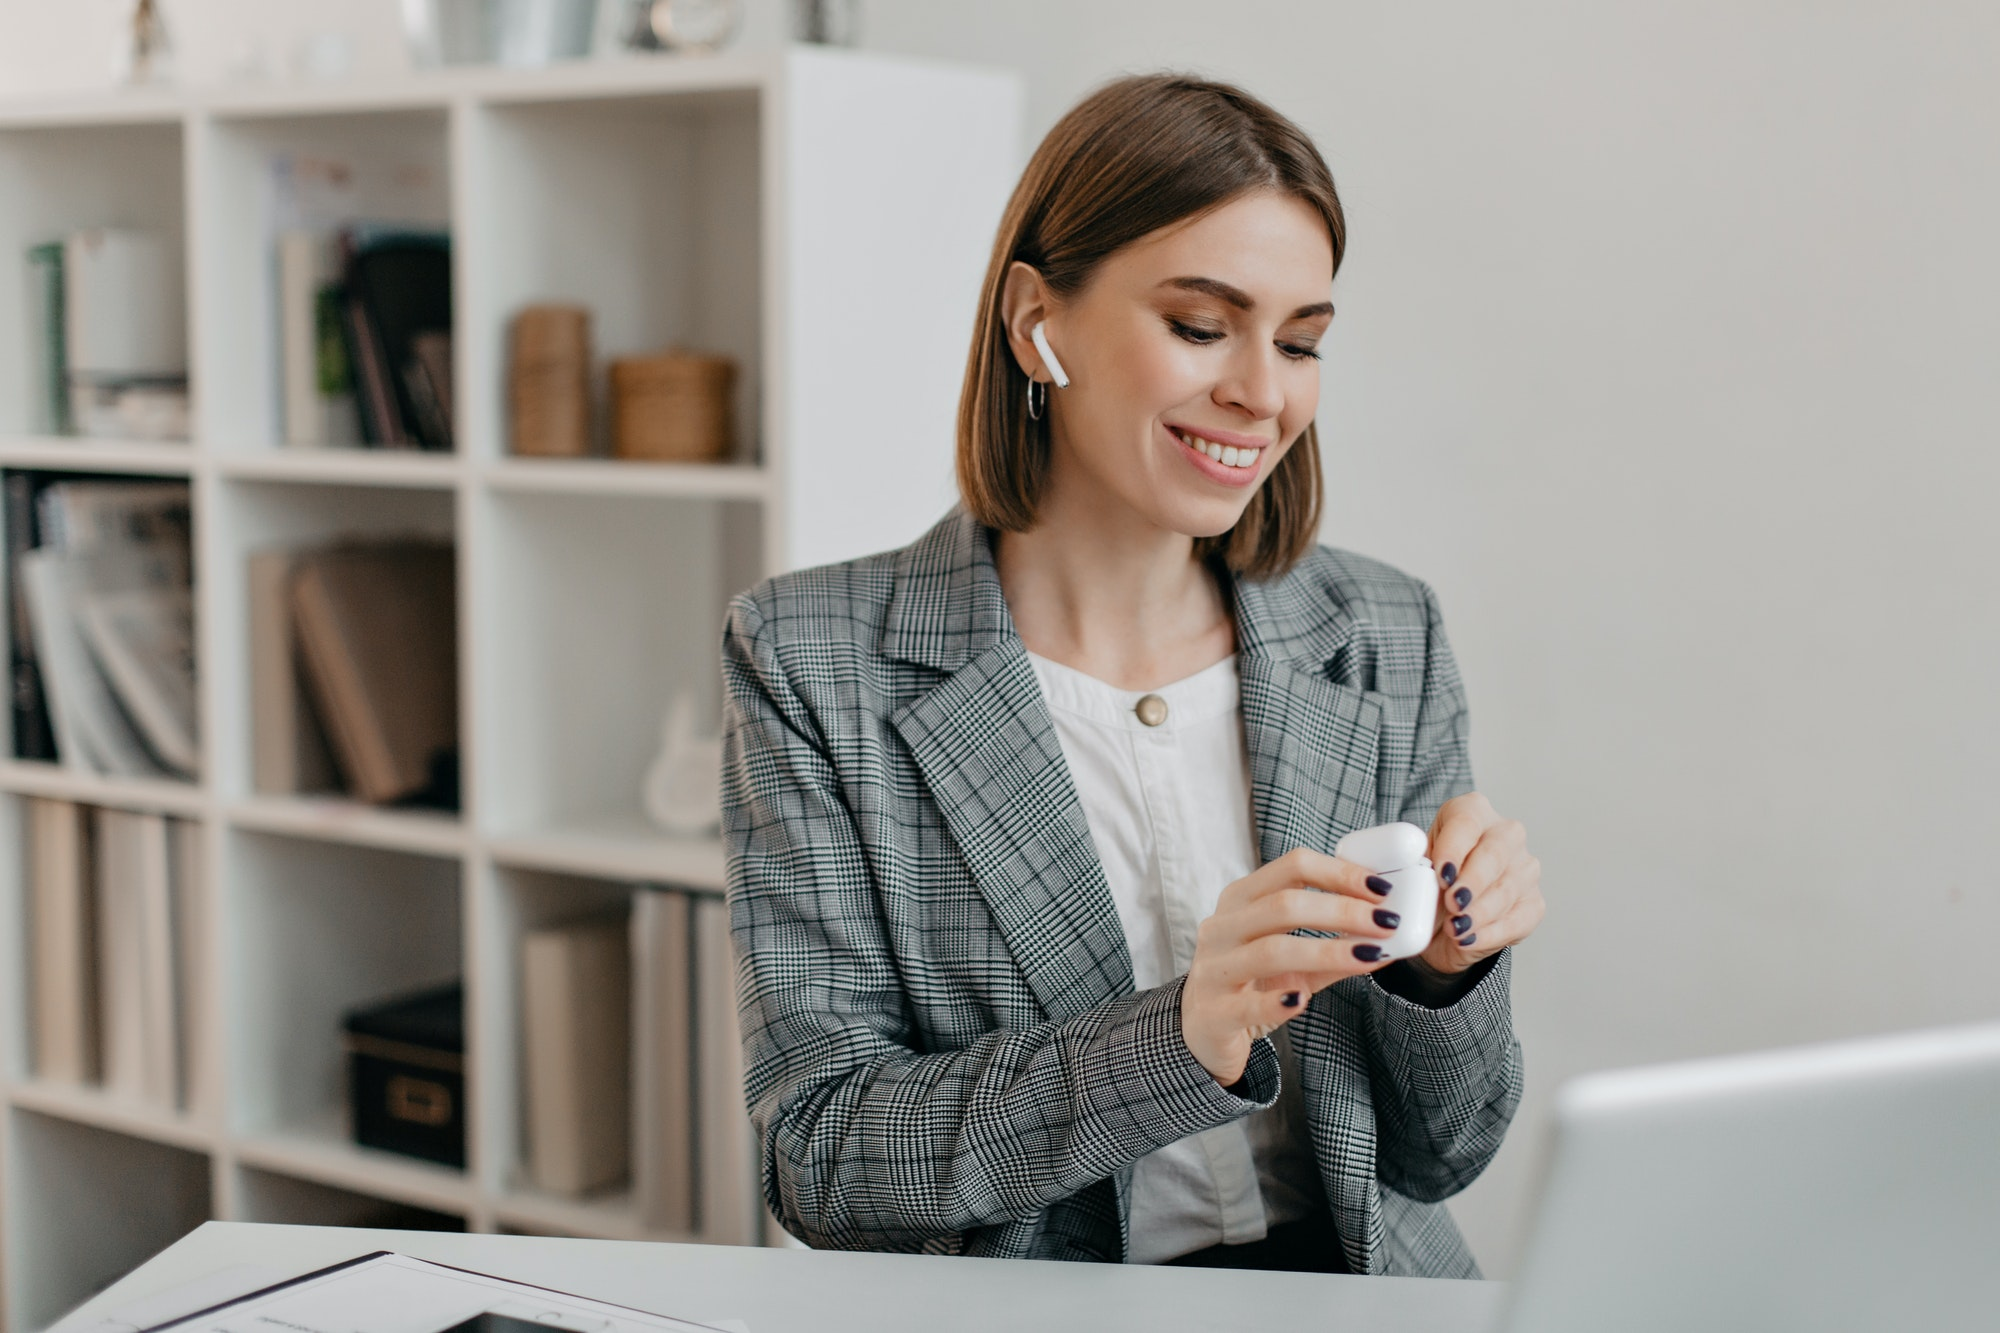 Portrait of smiling woman in office outfit putting on airpods to communicate with customers